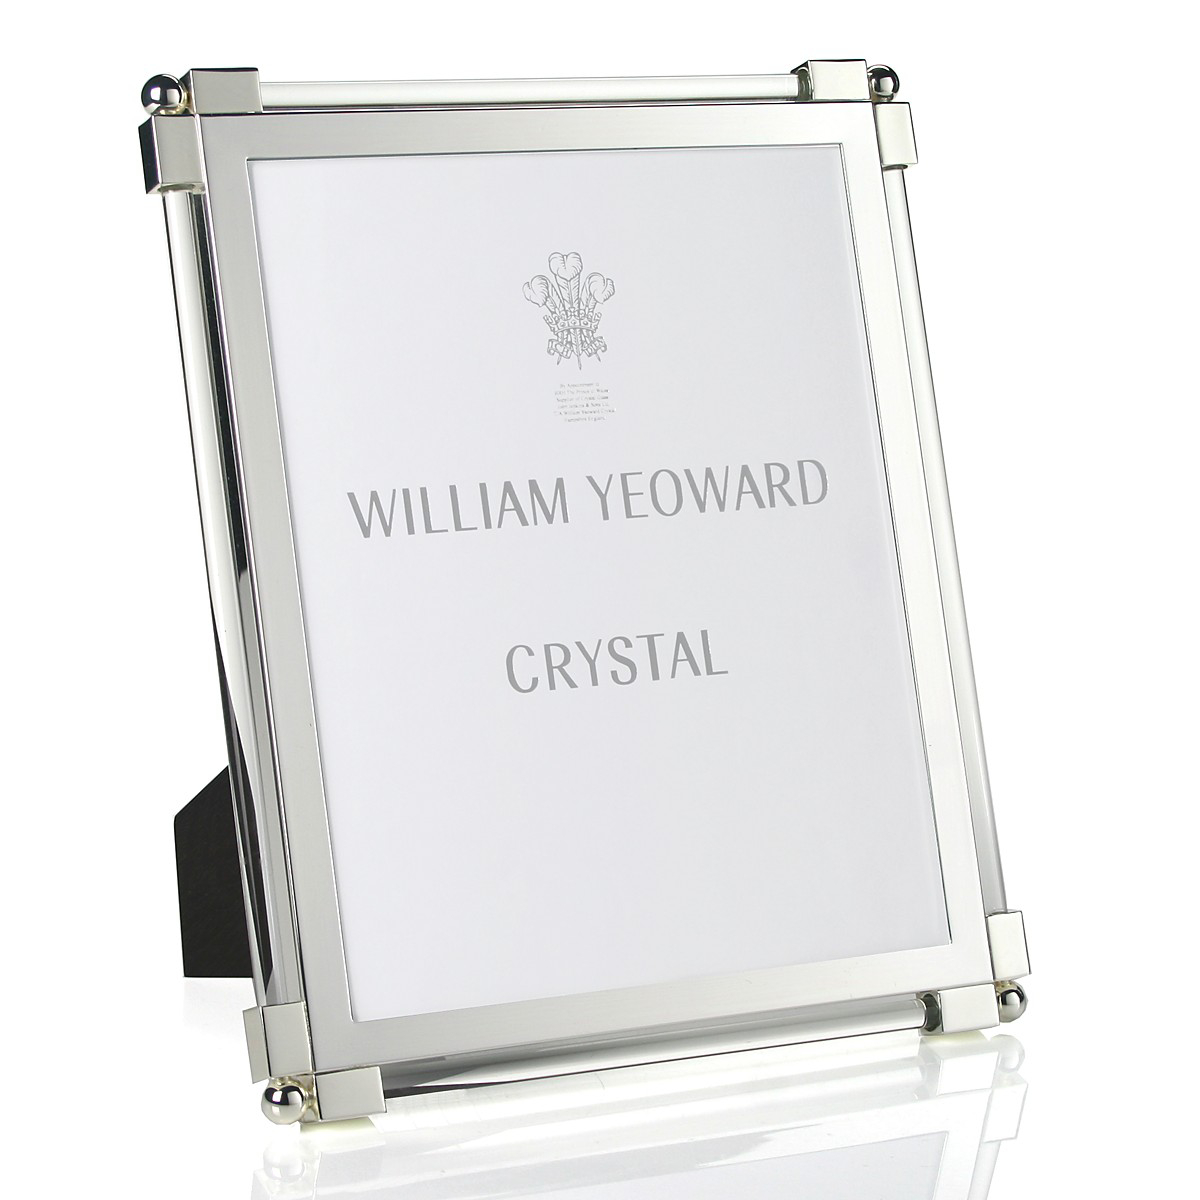 William Yeoward Crystal Classic Glass Clear Frame, 8x10